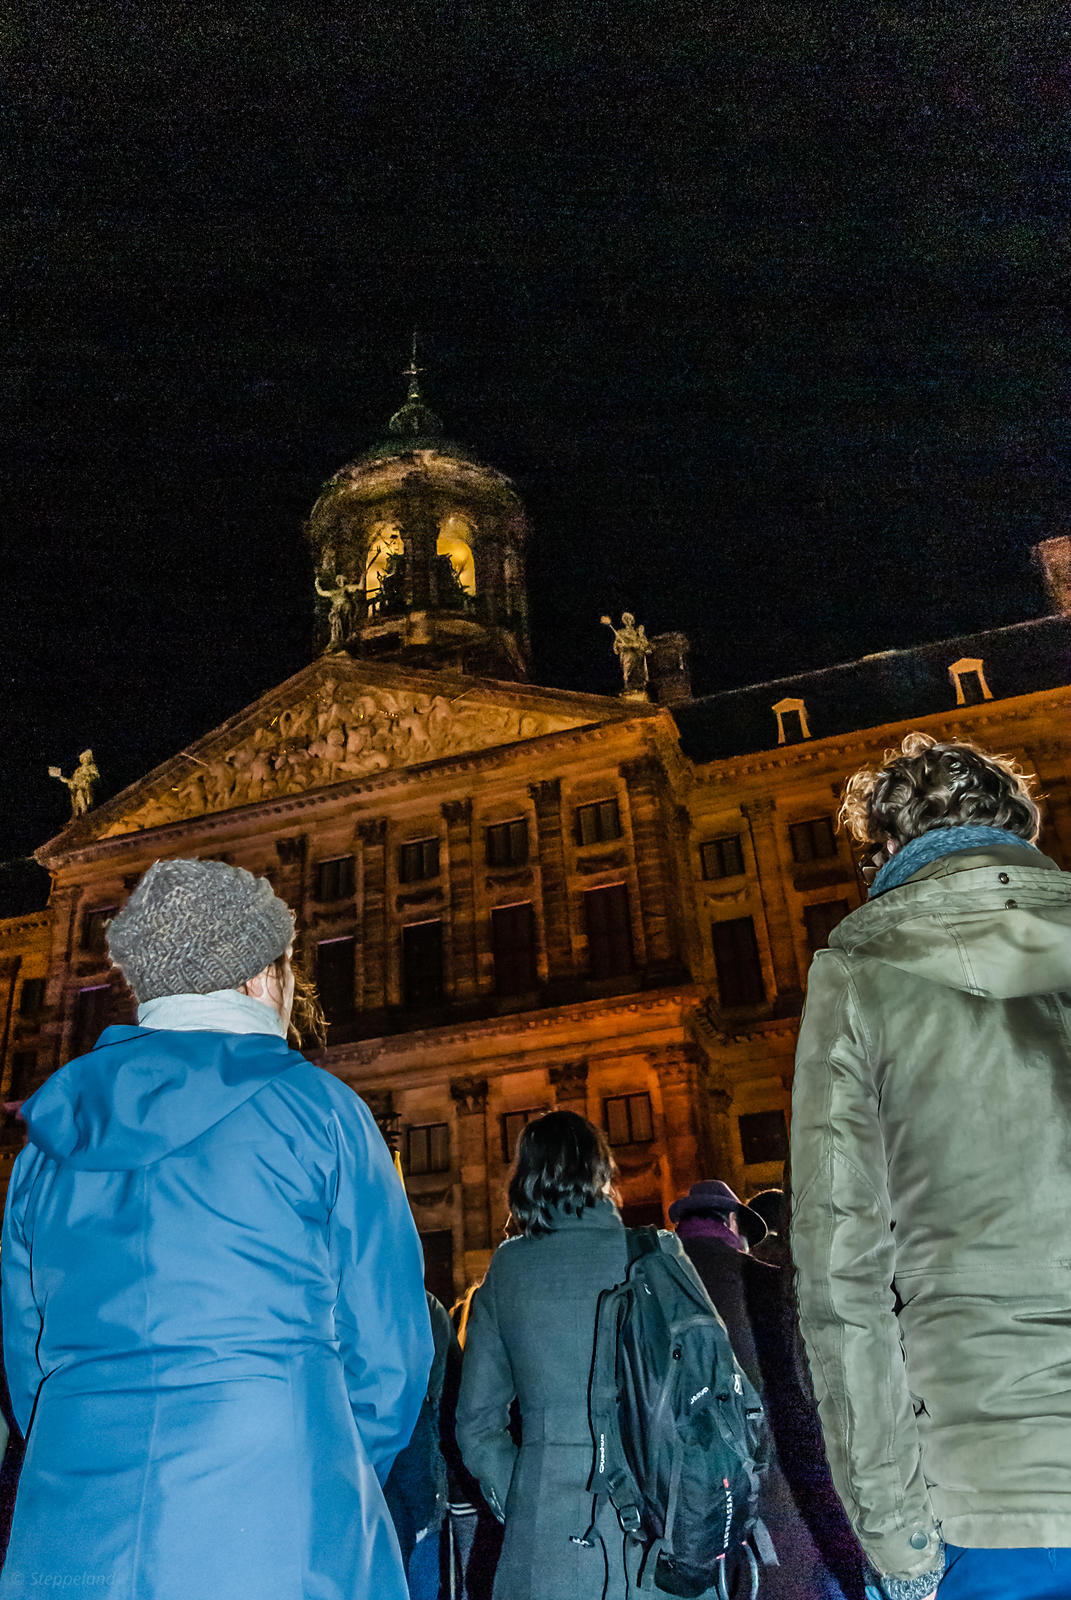 Amsterdam, Netherlands 2015-01-08: A minute of silence in solidarity with the victims and survivors of the terrorist attack i...